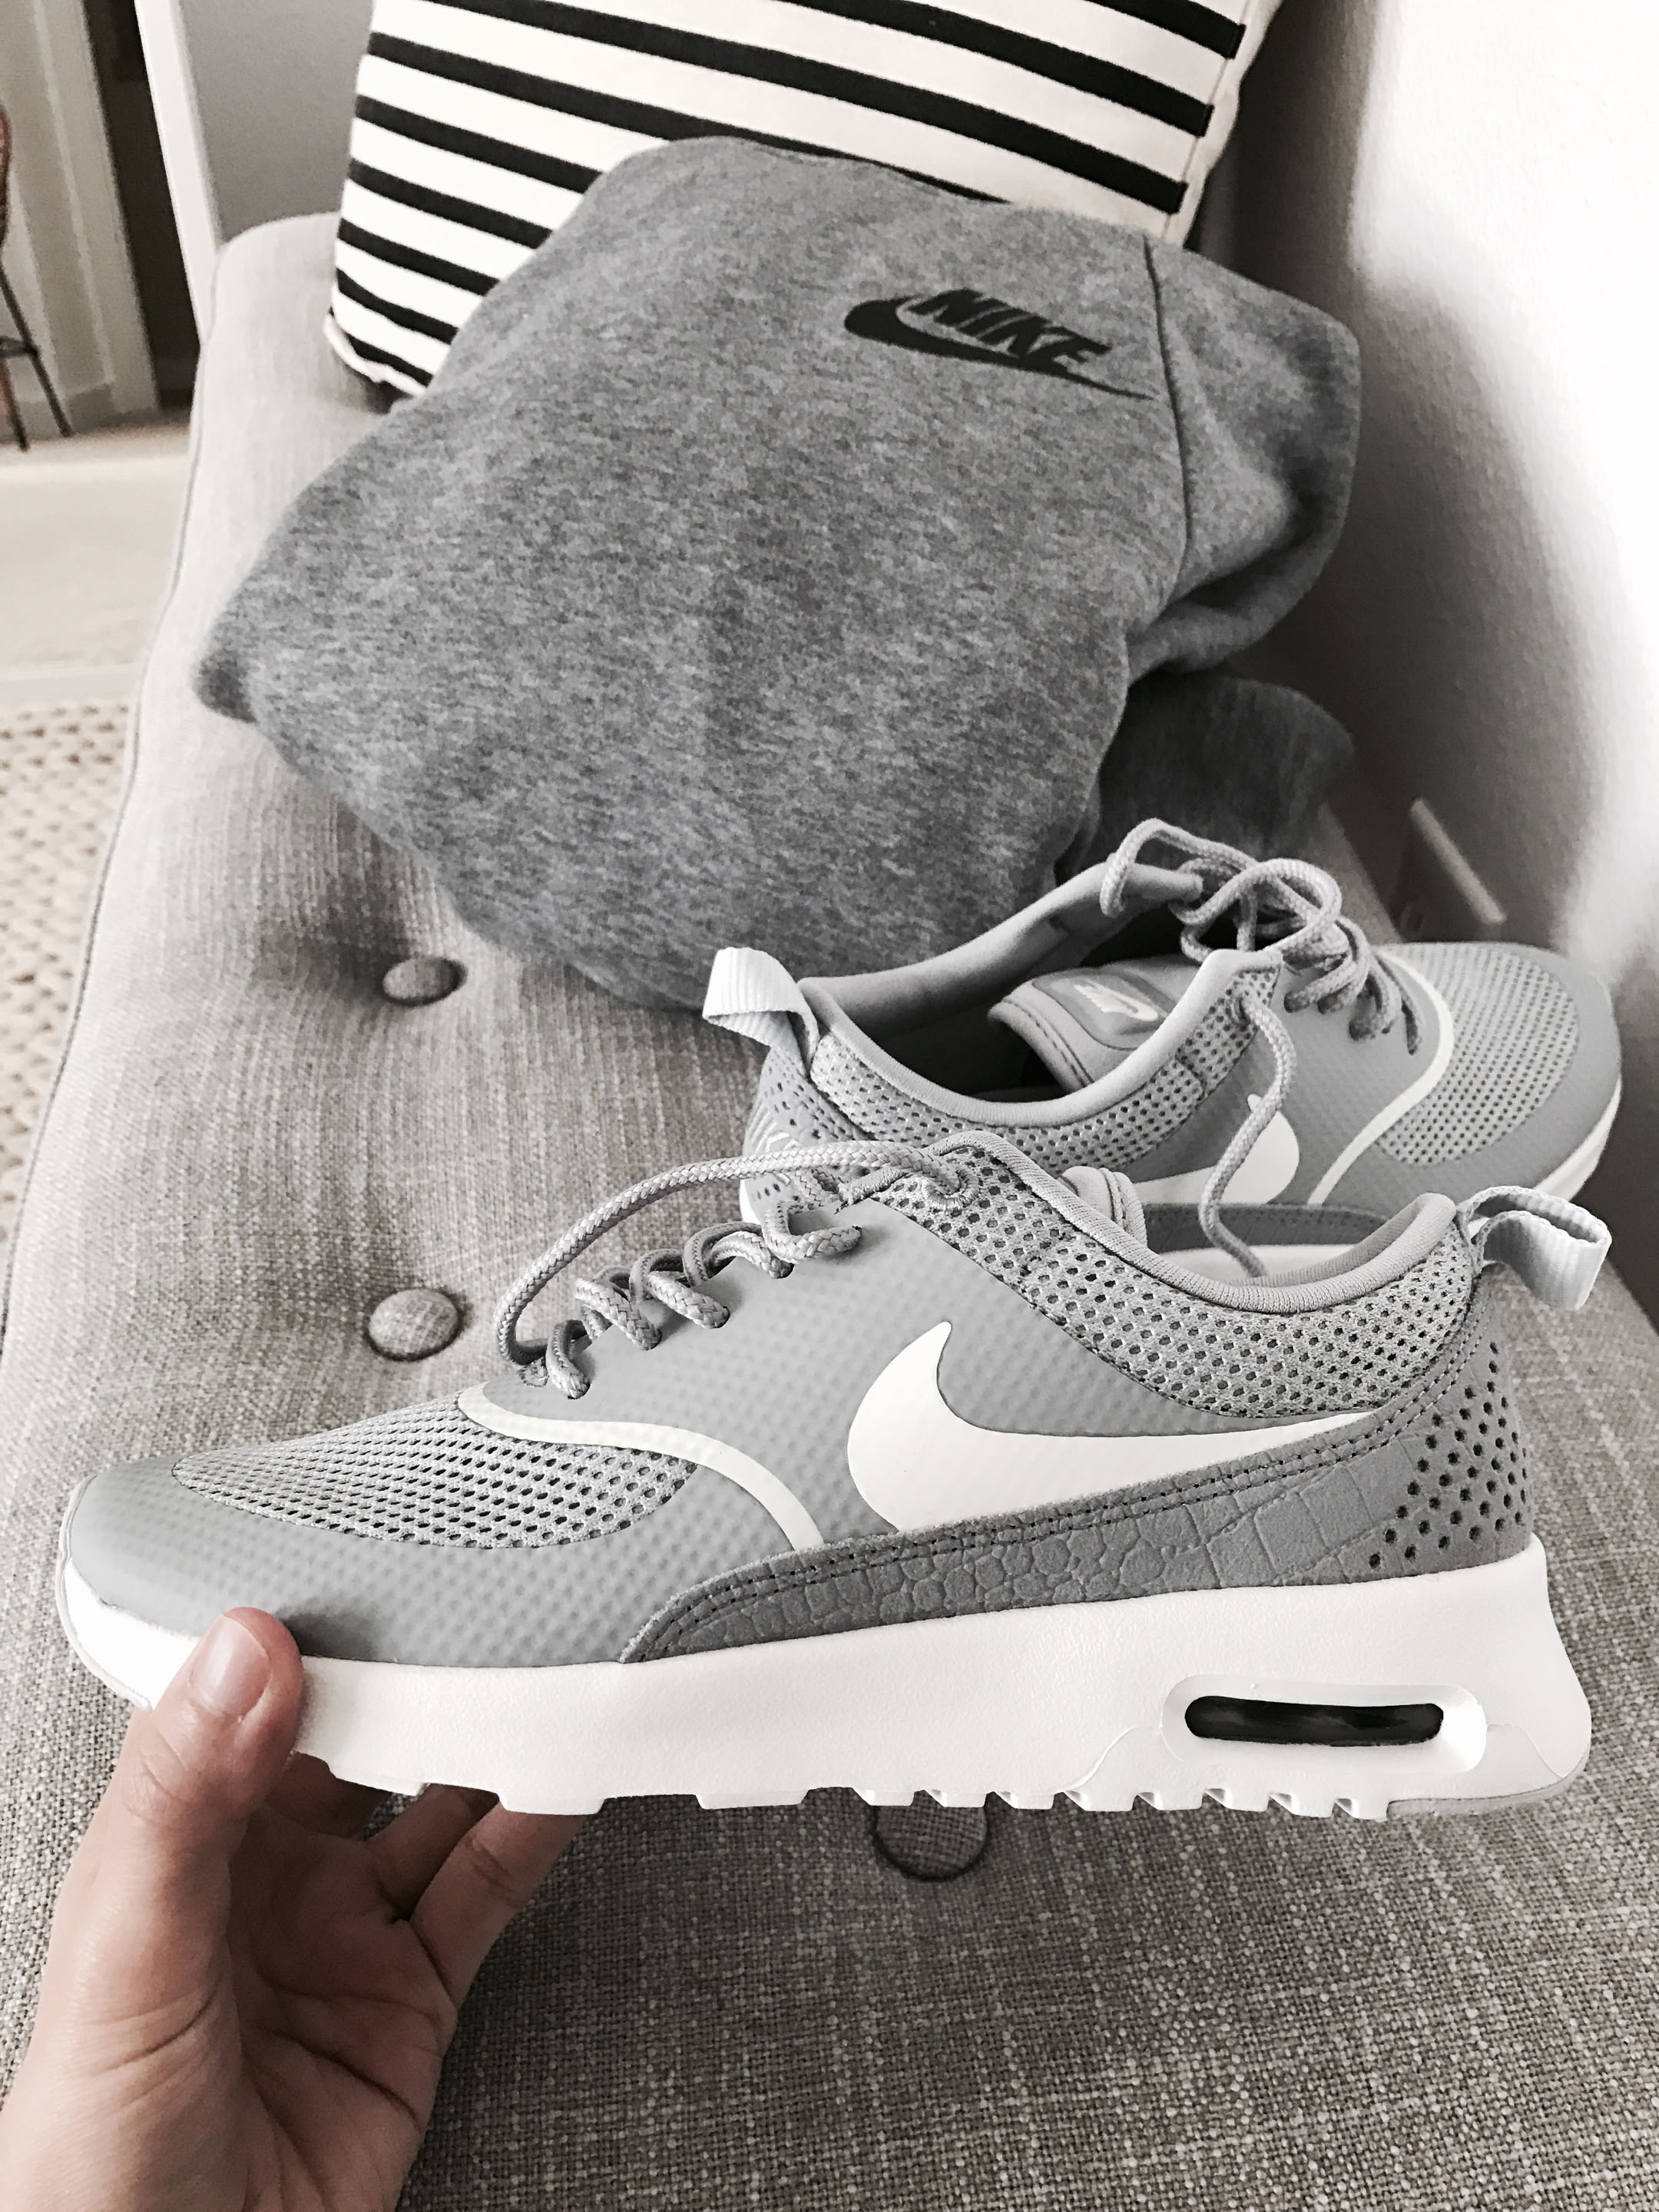 Nike Thea gray sneakers